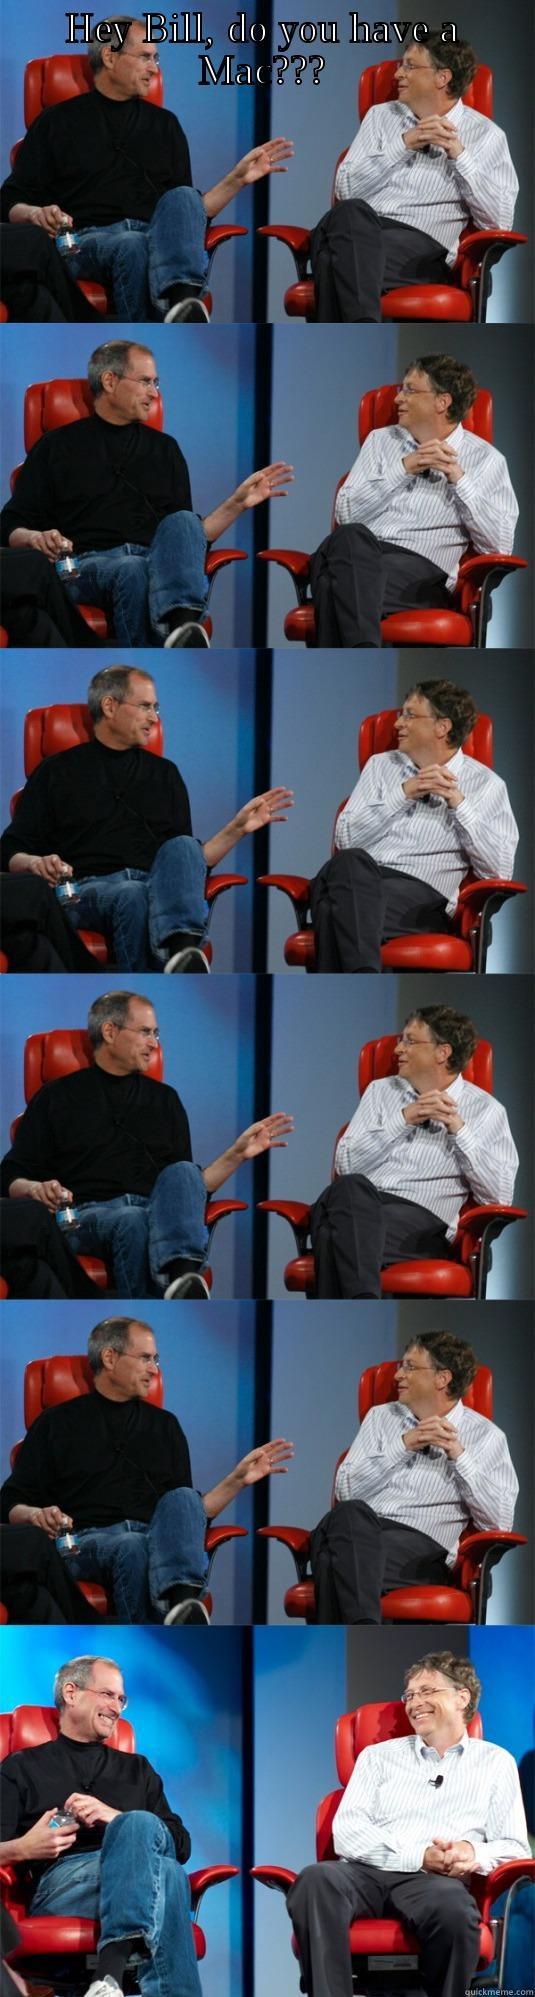 Do you have a Mac? - HEY BILL, DO YOU HAVE A MAC???  Steve Jobs vs Bill Gates